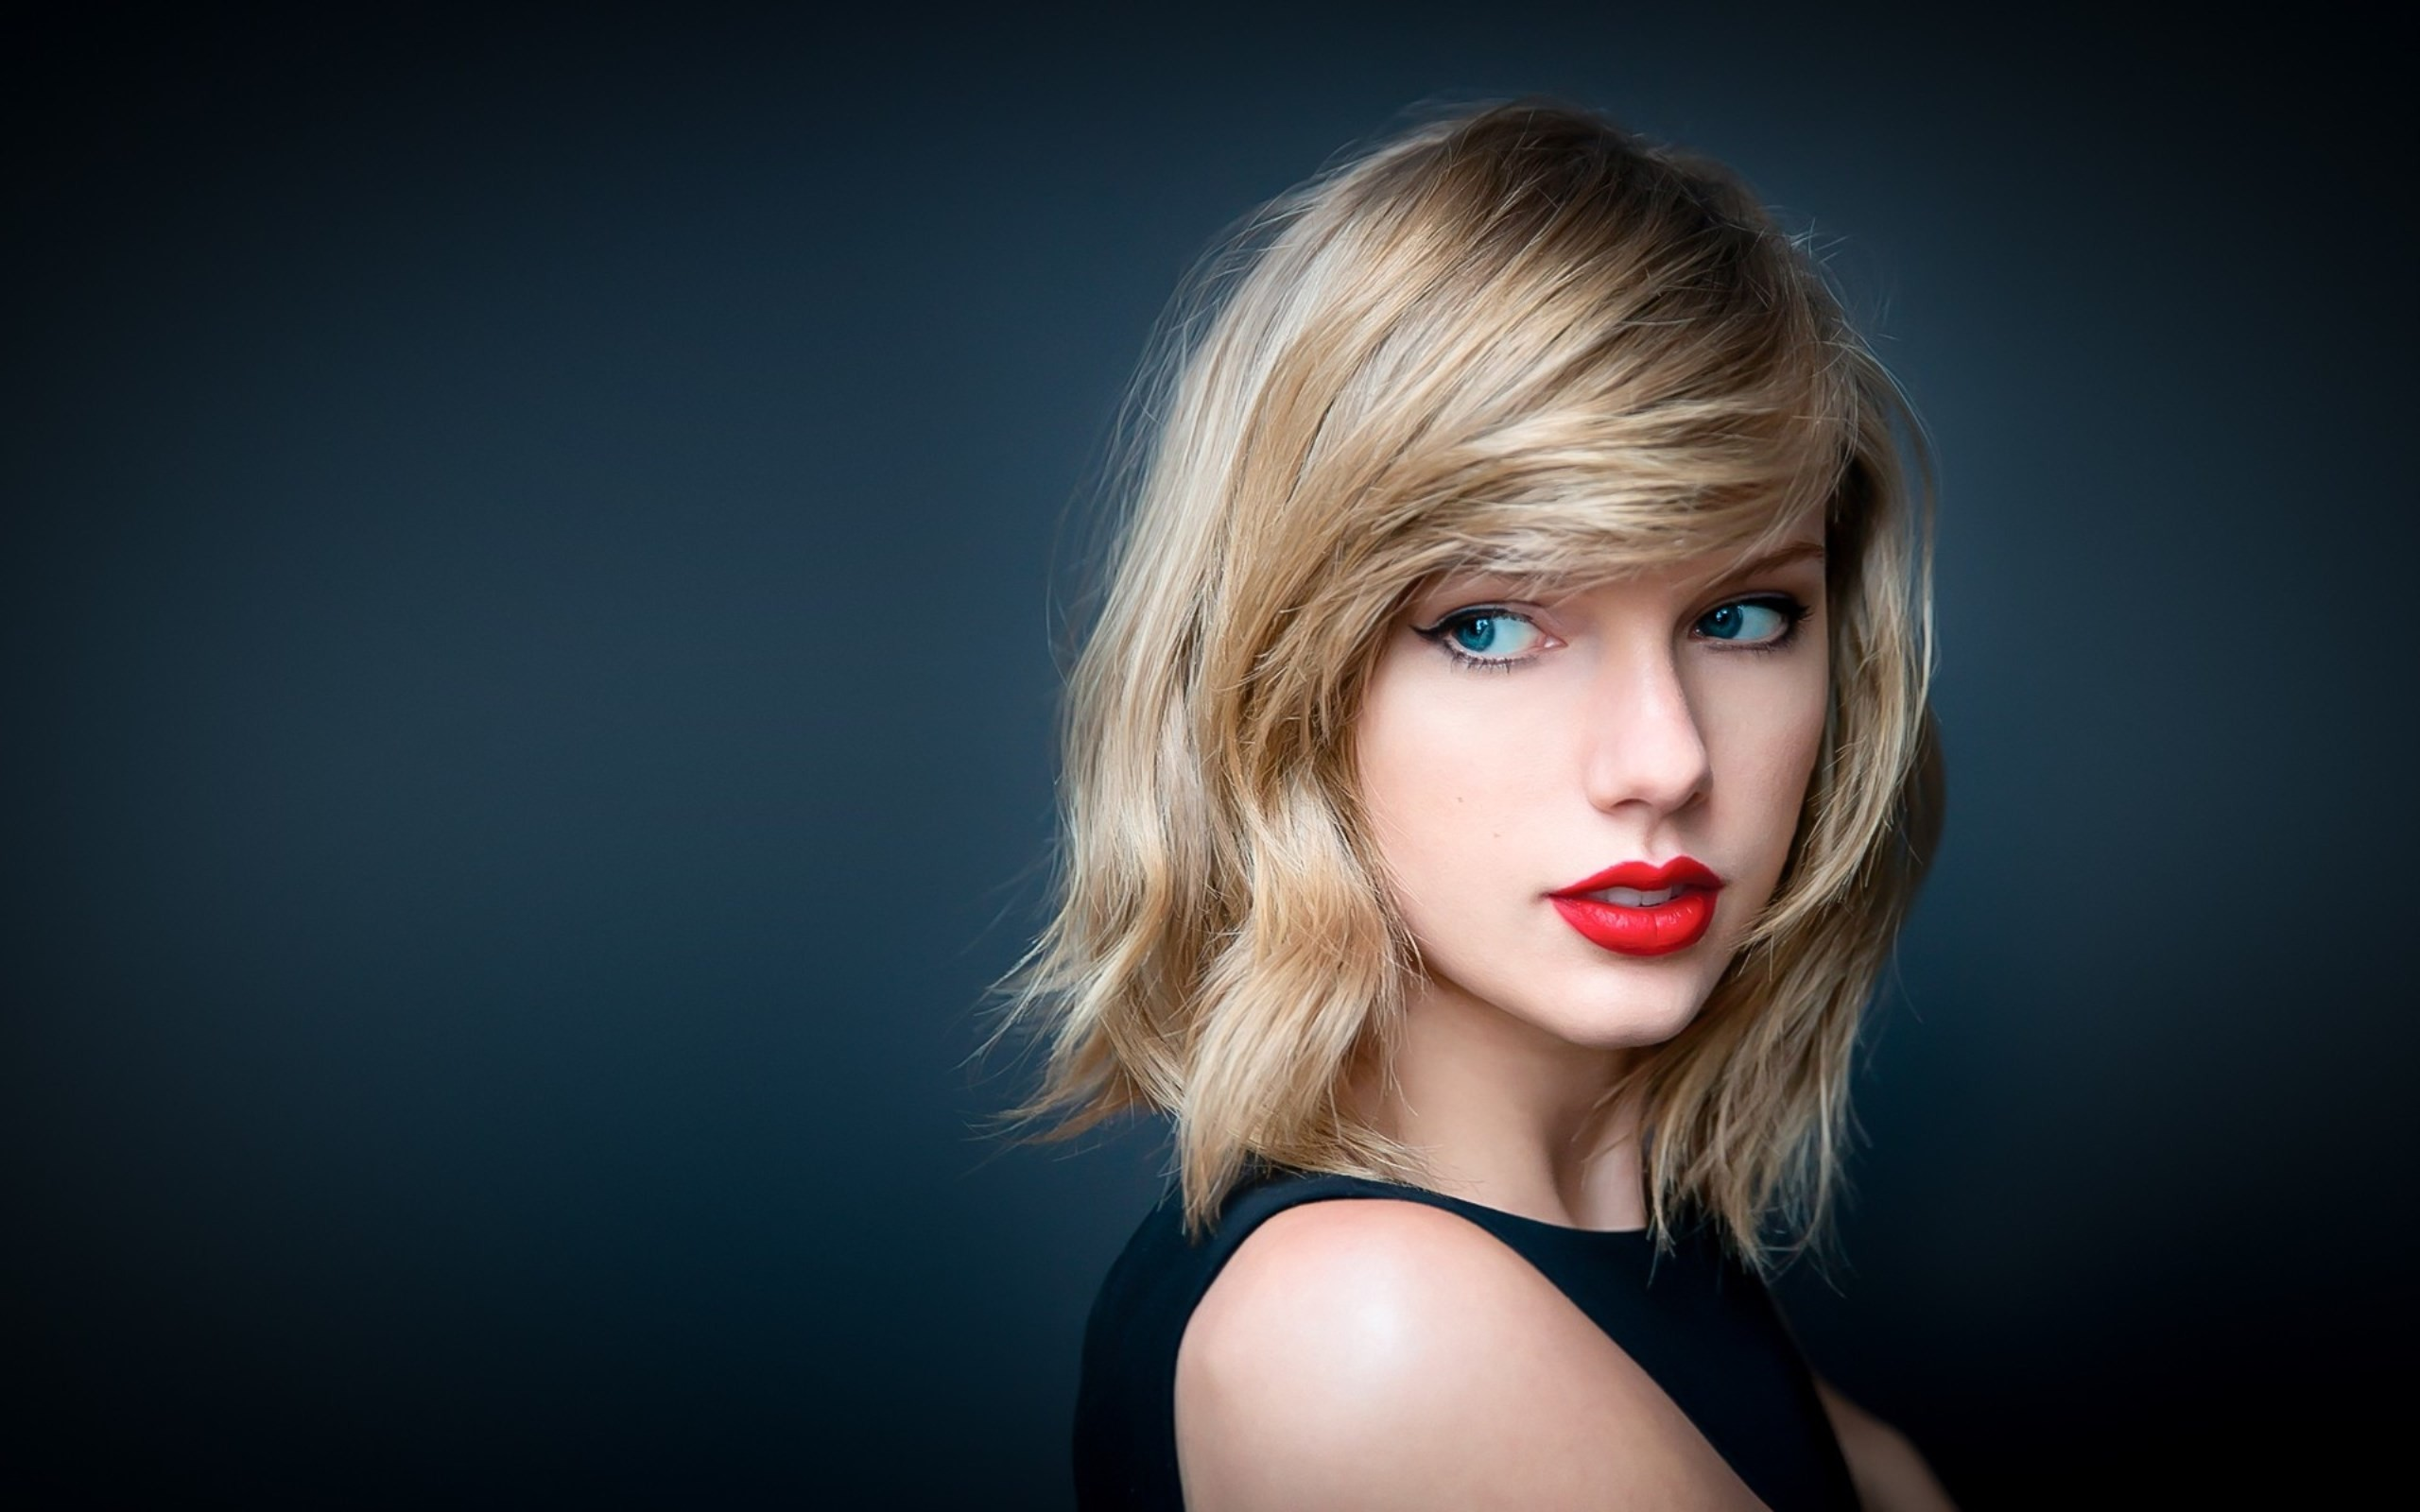 taylor swift hd 2018 wallpapers (70+ images)